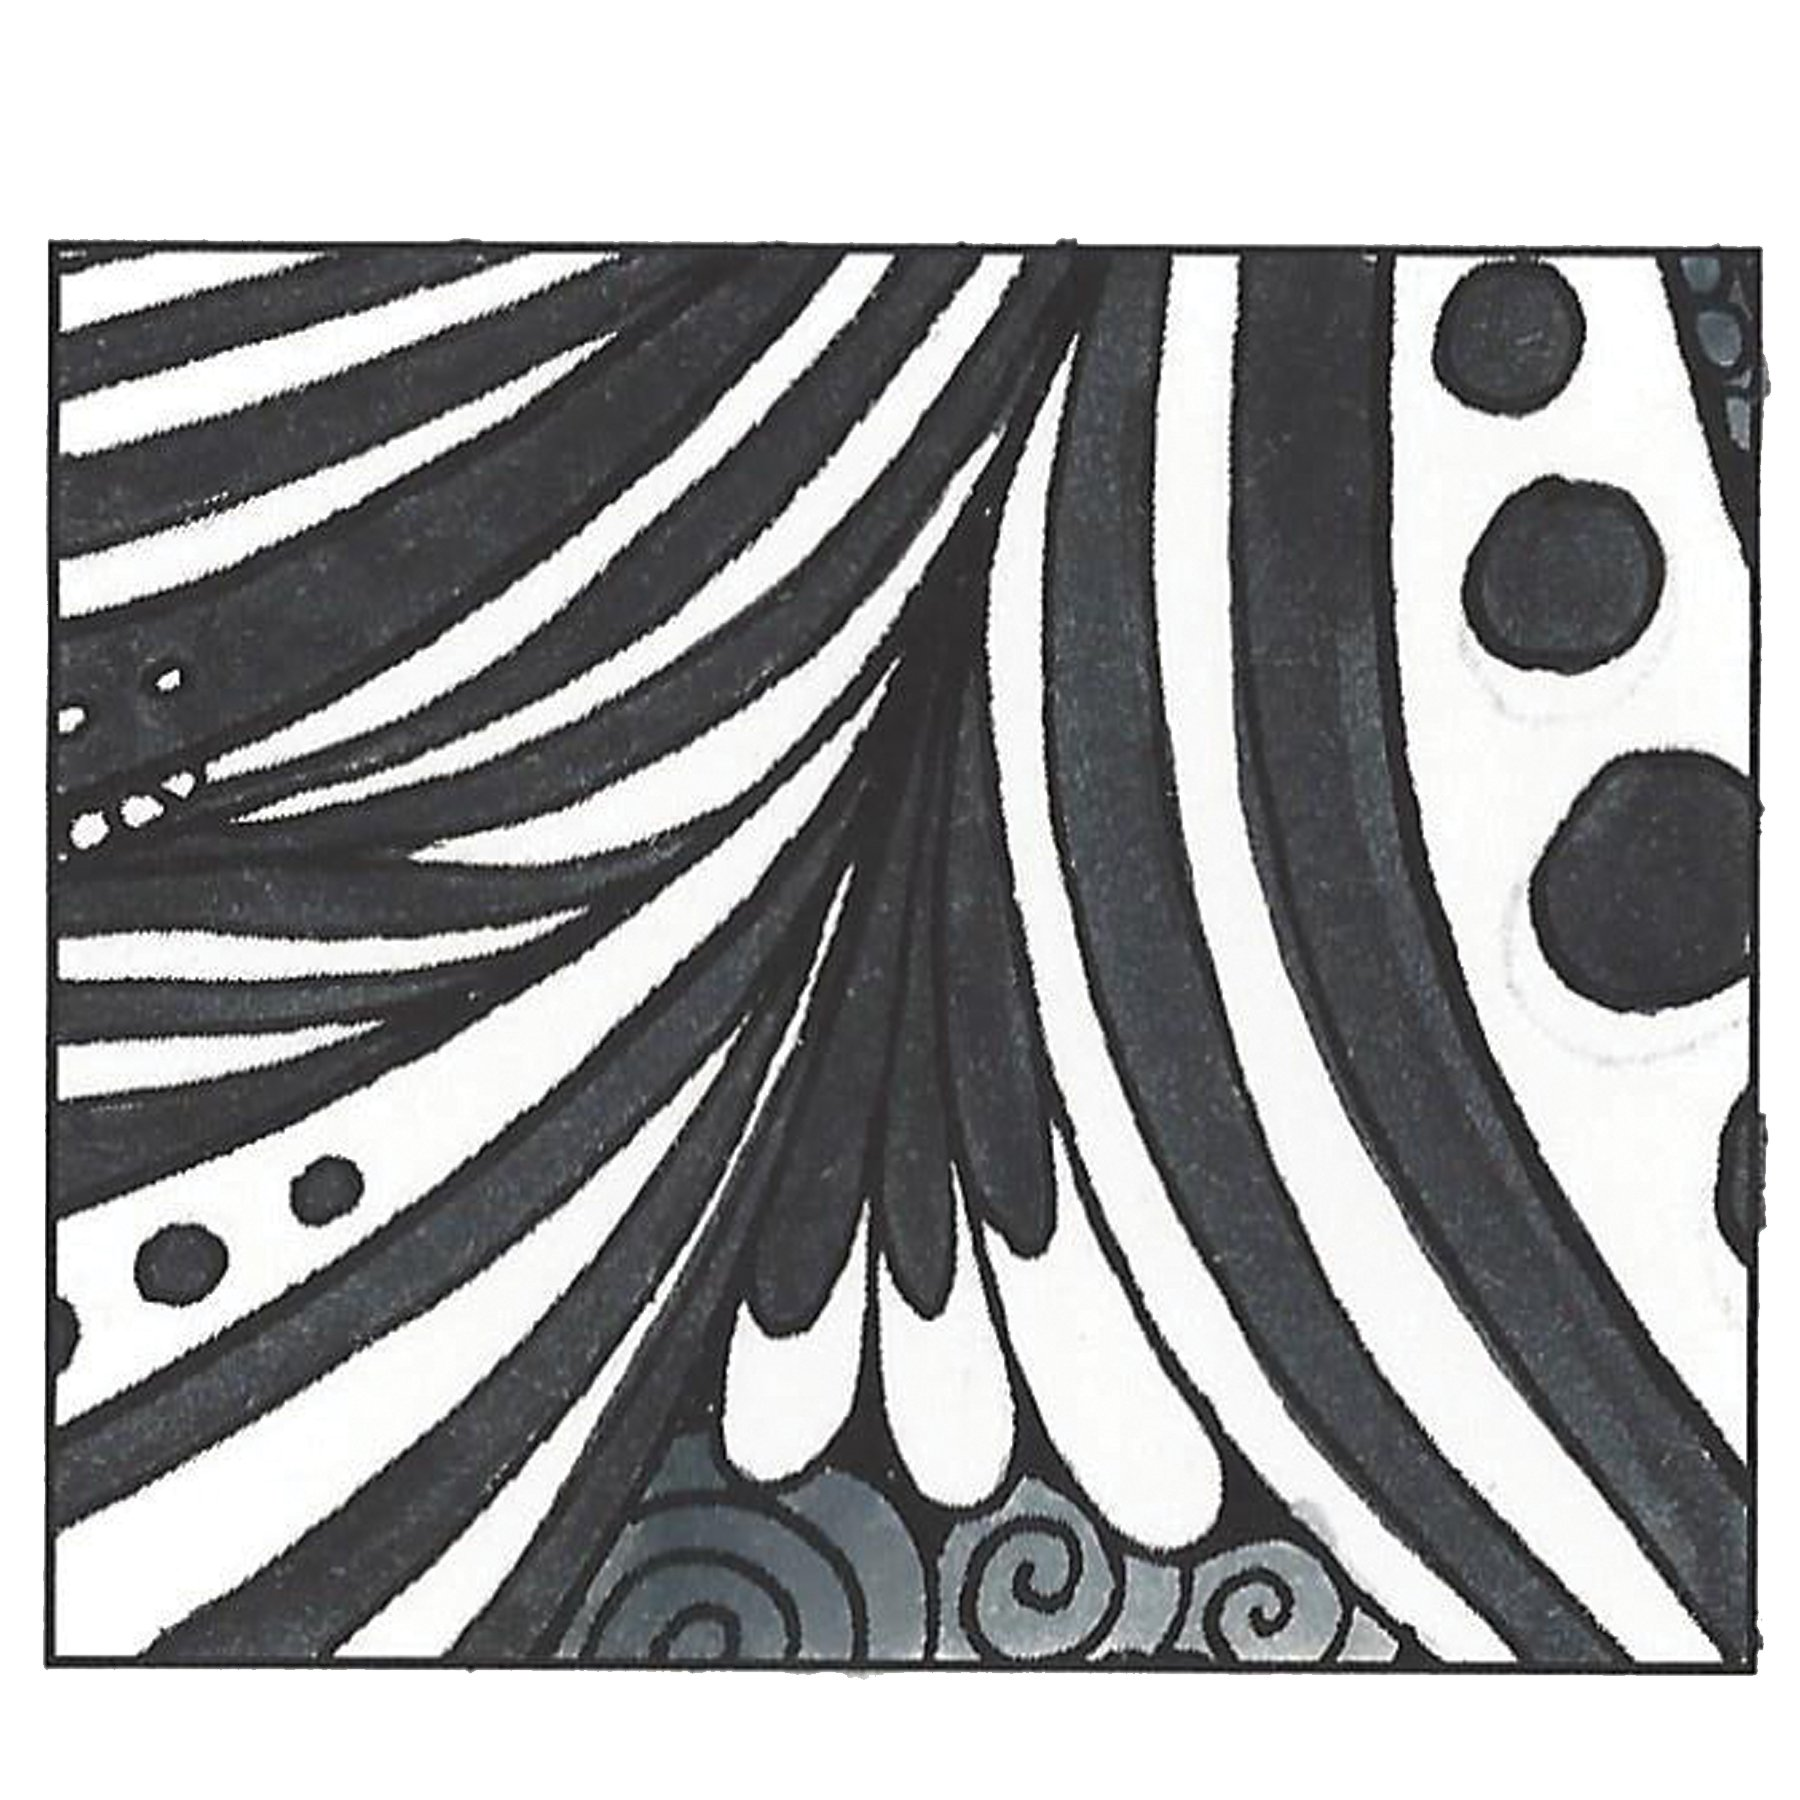 Tombow 56621 Dual Brush Pen, N15 - Black, 1-Pack. Blendable, Brush and Fine Tip Marker by Tombow (Image #4)